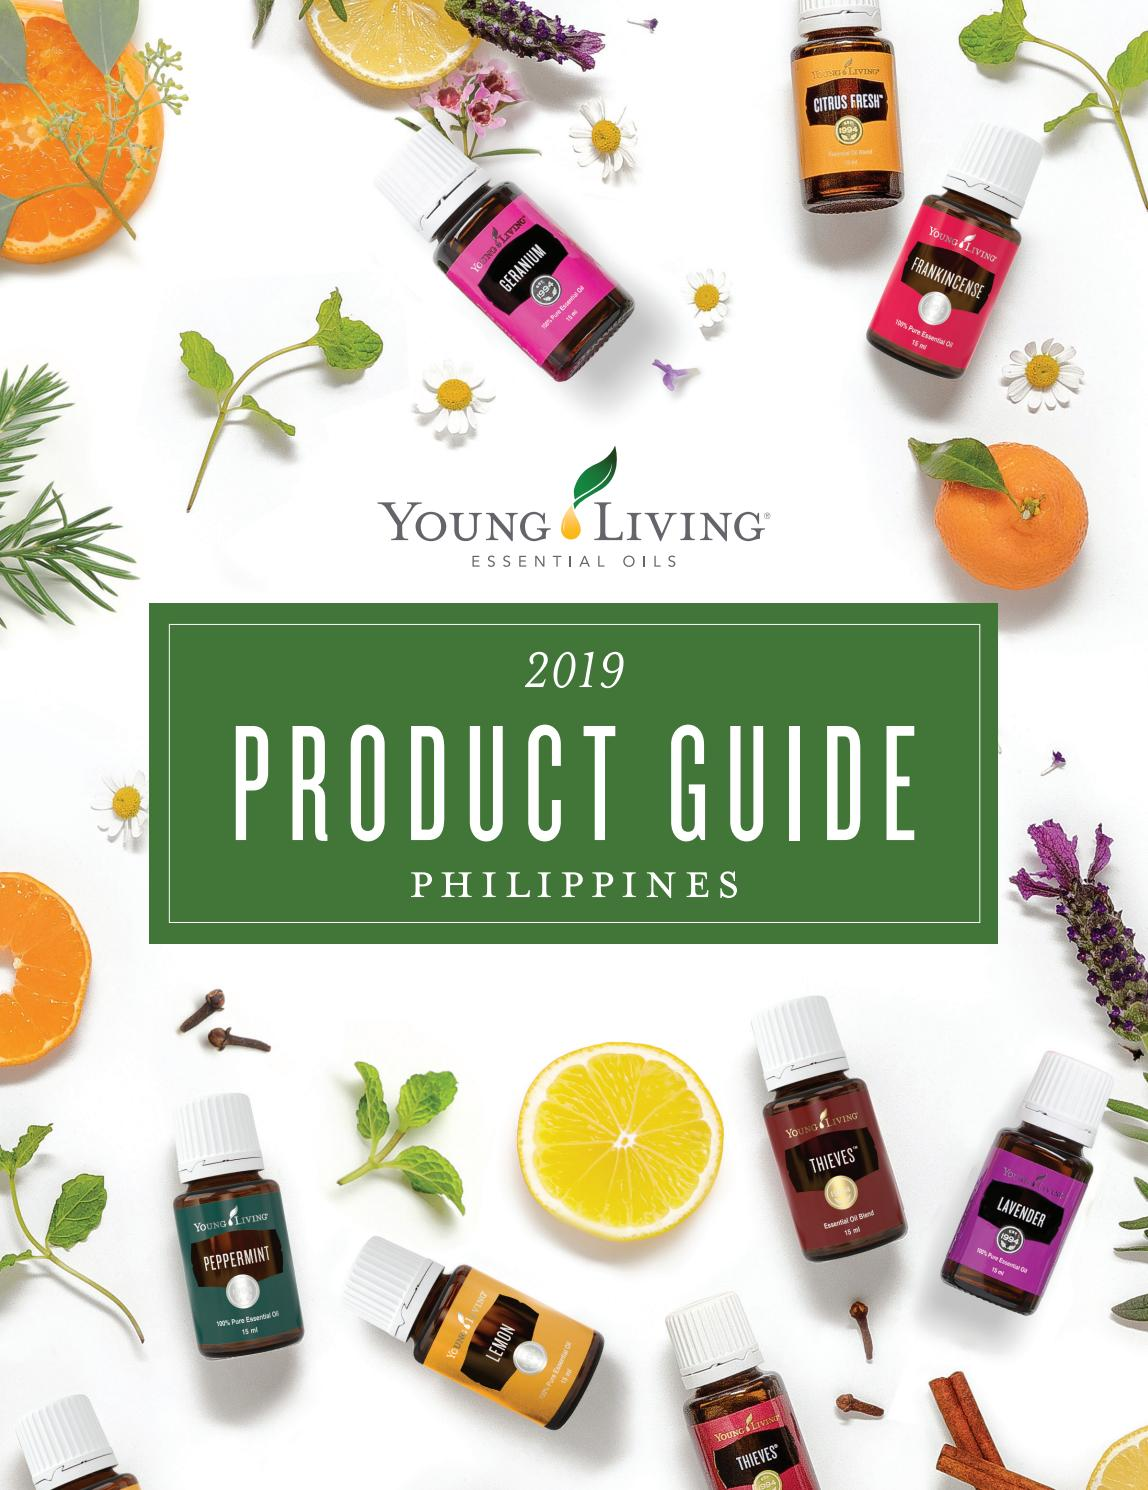 2019 Product Guide Young Living Philippines By Younglivingphilippines Issuu